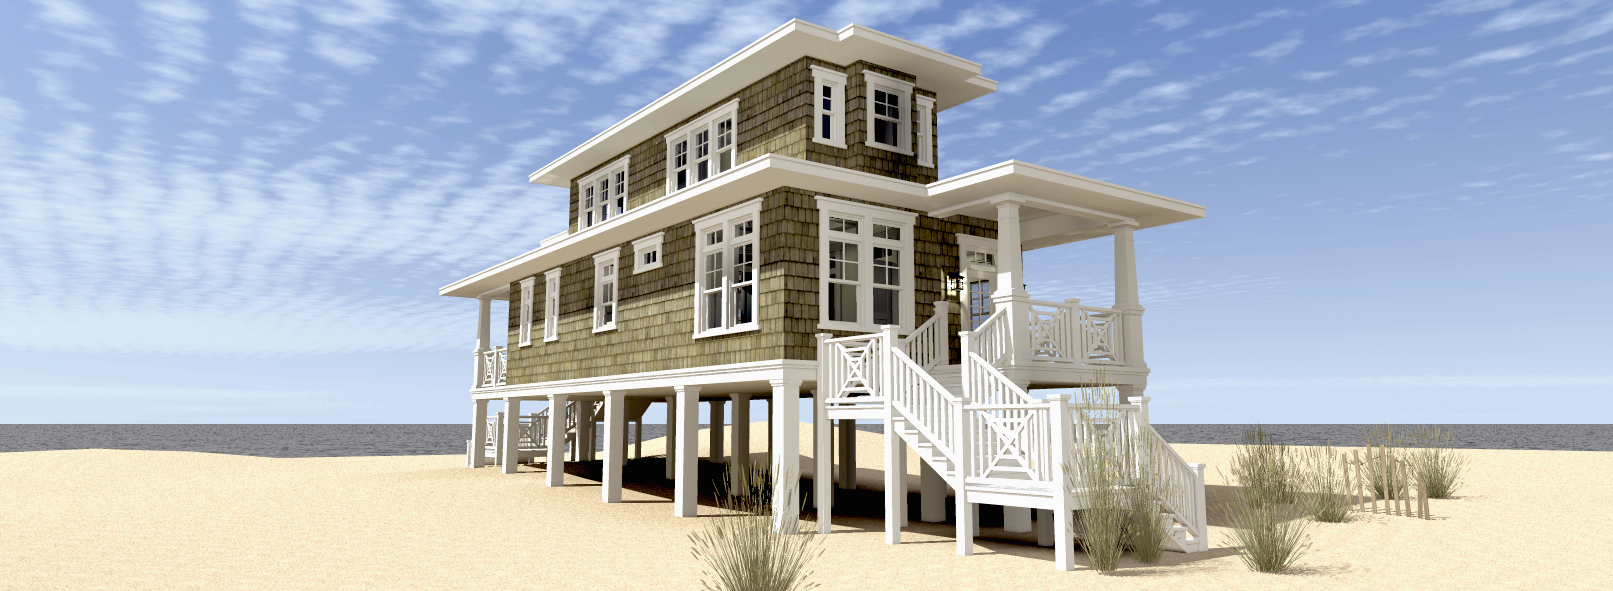 Beach House Plan With Walkout Sundeck 44124td: beach house building plans